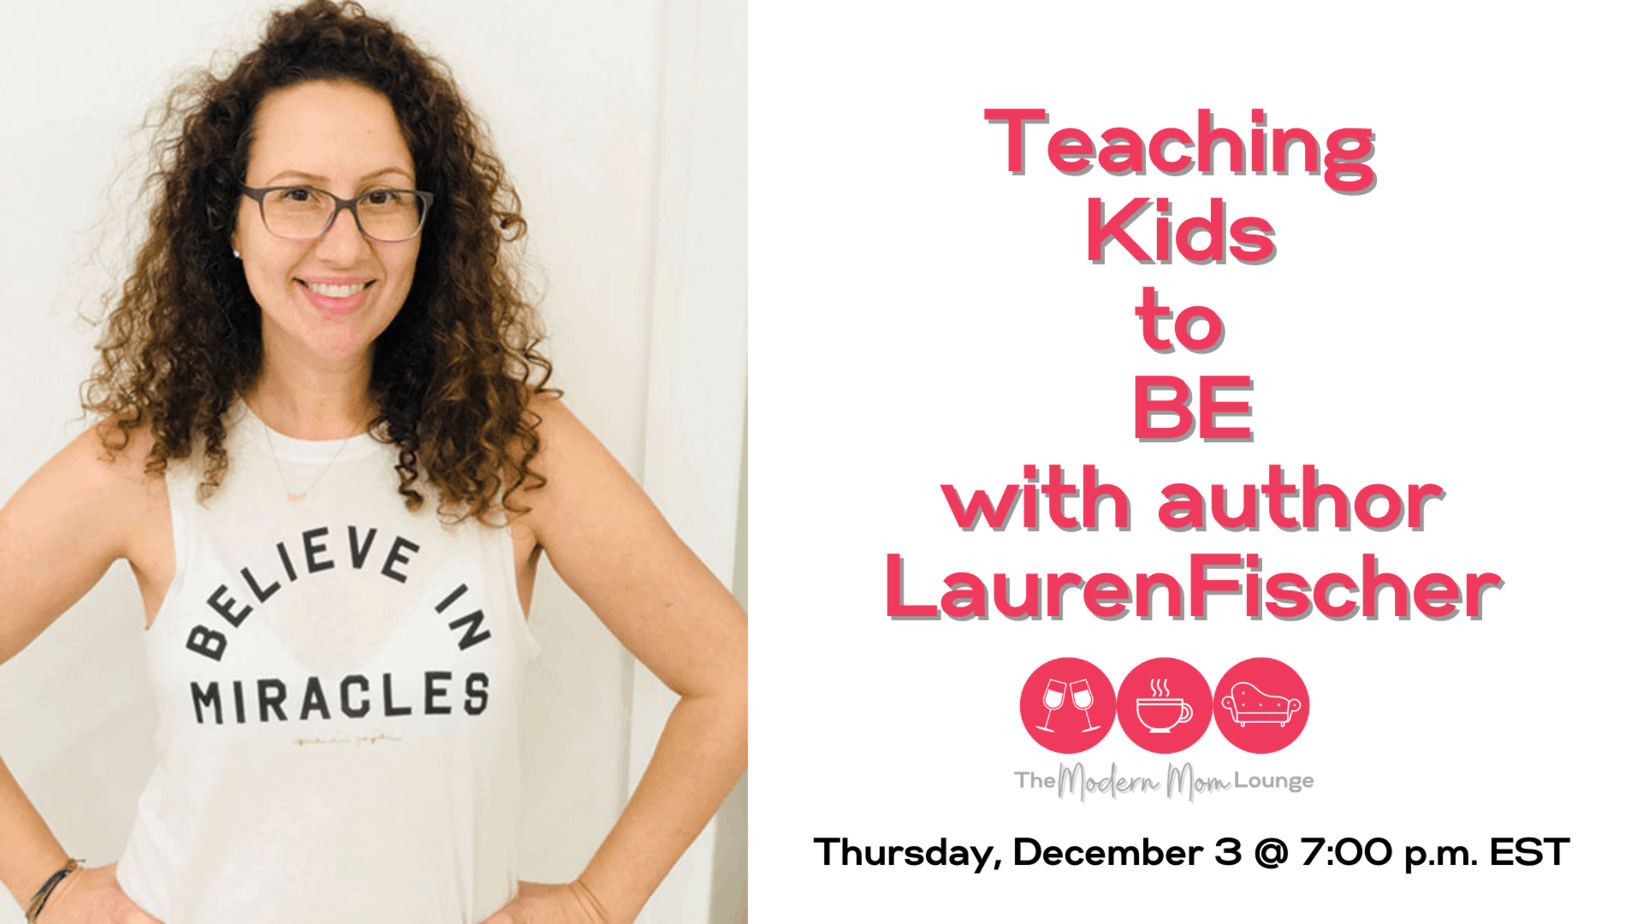 teaching kids to be with lauren fischer